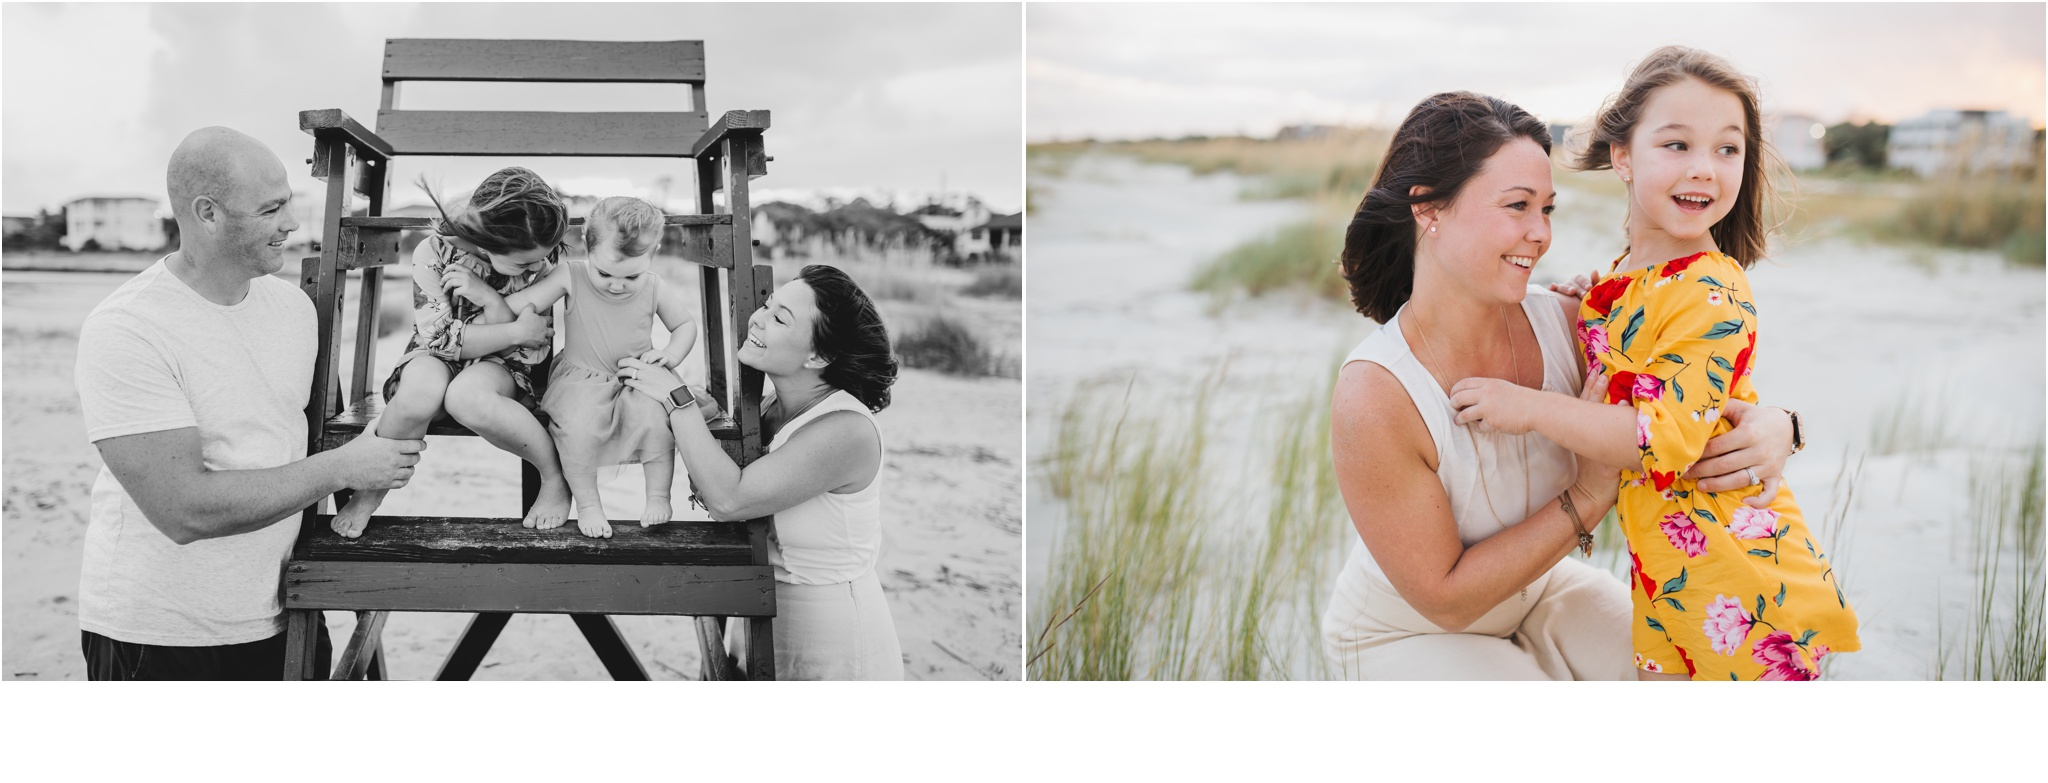 Rainey_Gregg_Photography_St._Simons_Island_Georgia_California_Wedding_Portrait_Photography_1397.jpg